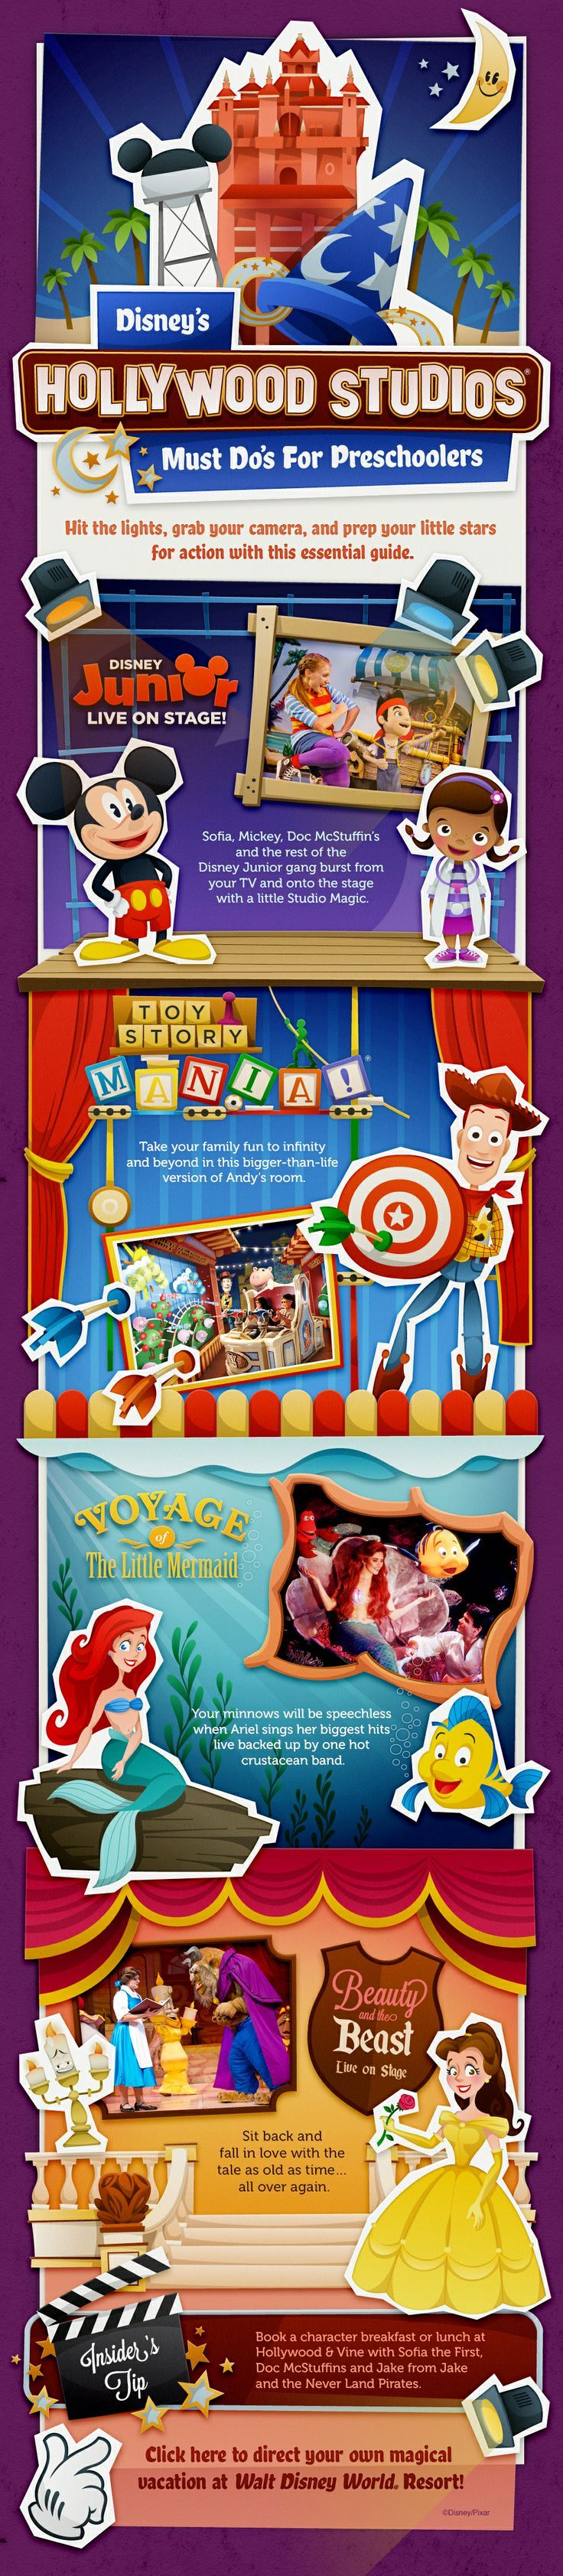 Disney's Hollywood Studios Must Do's for Preschoolers (or select another age group)! Disney Junior, Mickey Mouse Club, Doc McStuffins, Sofia the First, Toy Story Mania, Voyage of the Little Mermaid, Beauty and the Beast Live on Stage!    Disney Vacation   Disney Vacation Tips   Disney Planning Tips   Disney World Planning   Disney World with Kids  